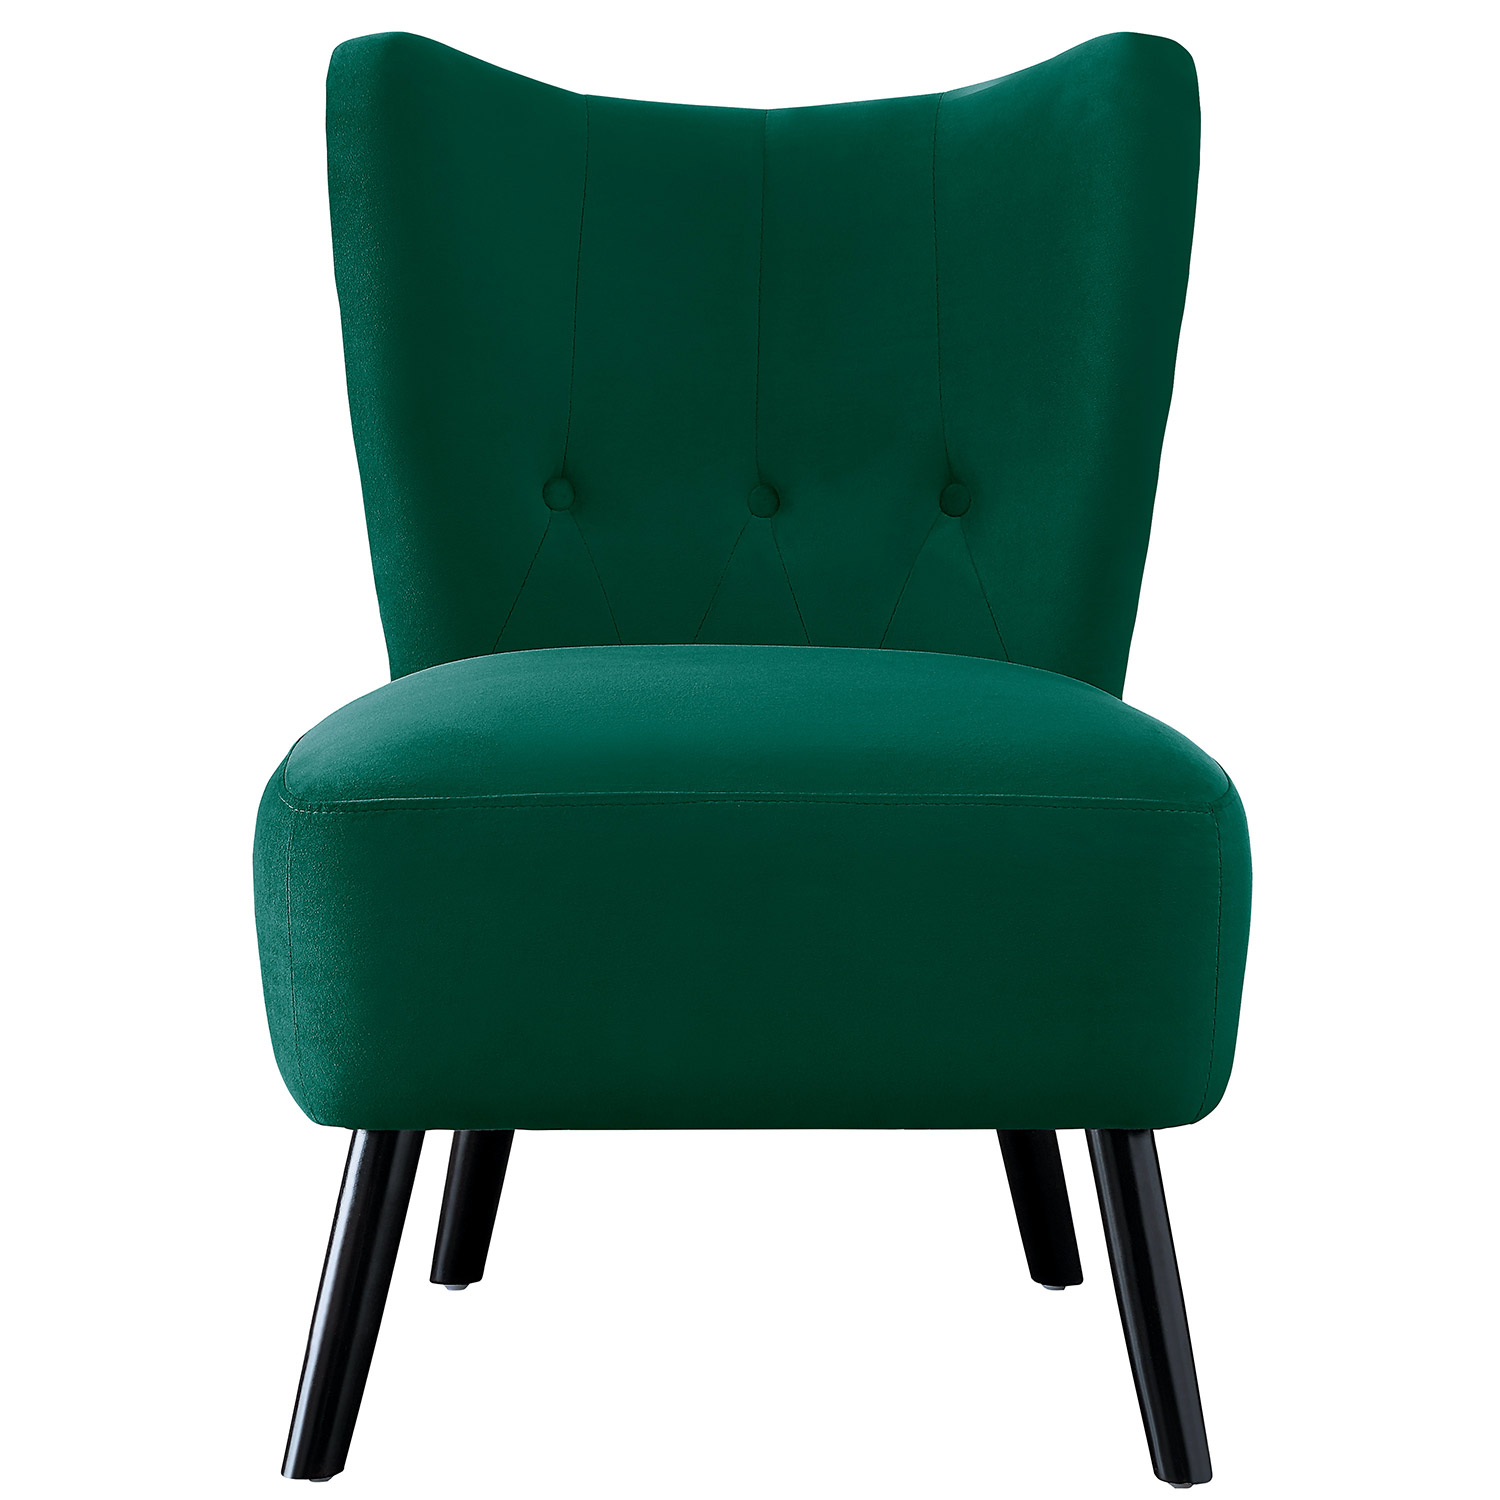 Homelegance Imani Accent Chair - Green